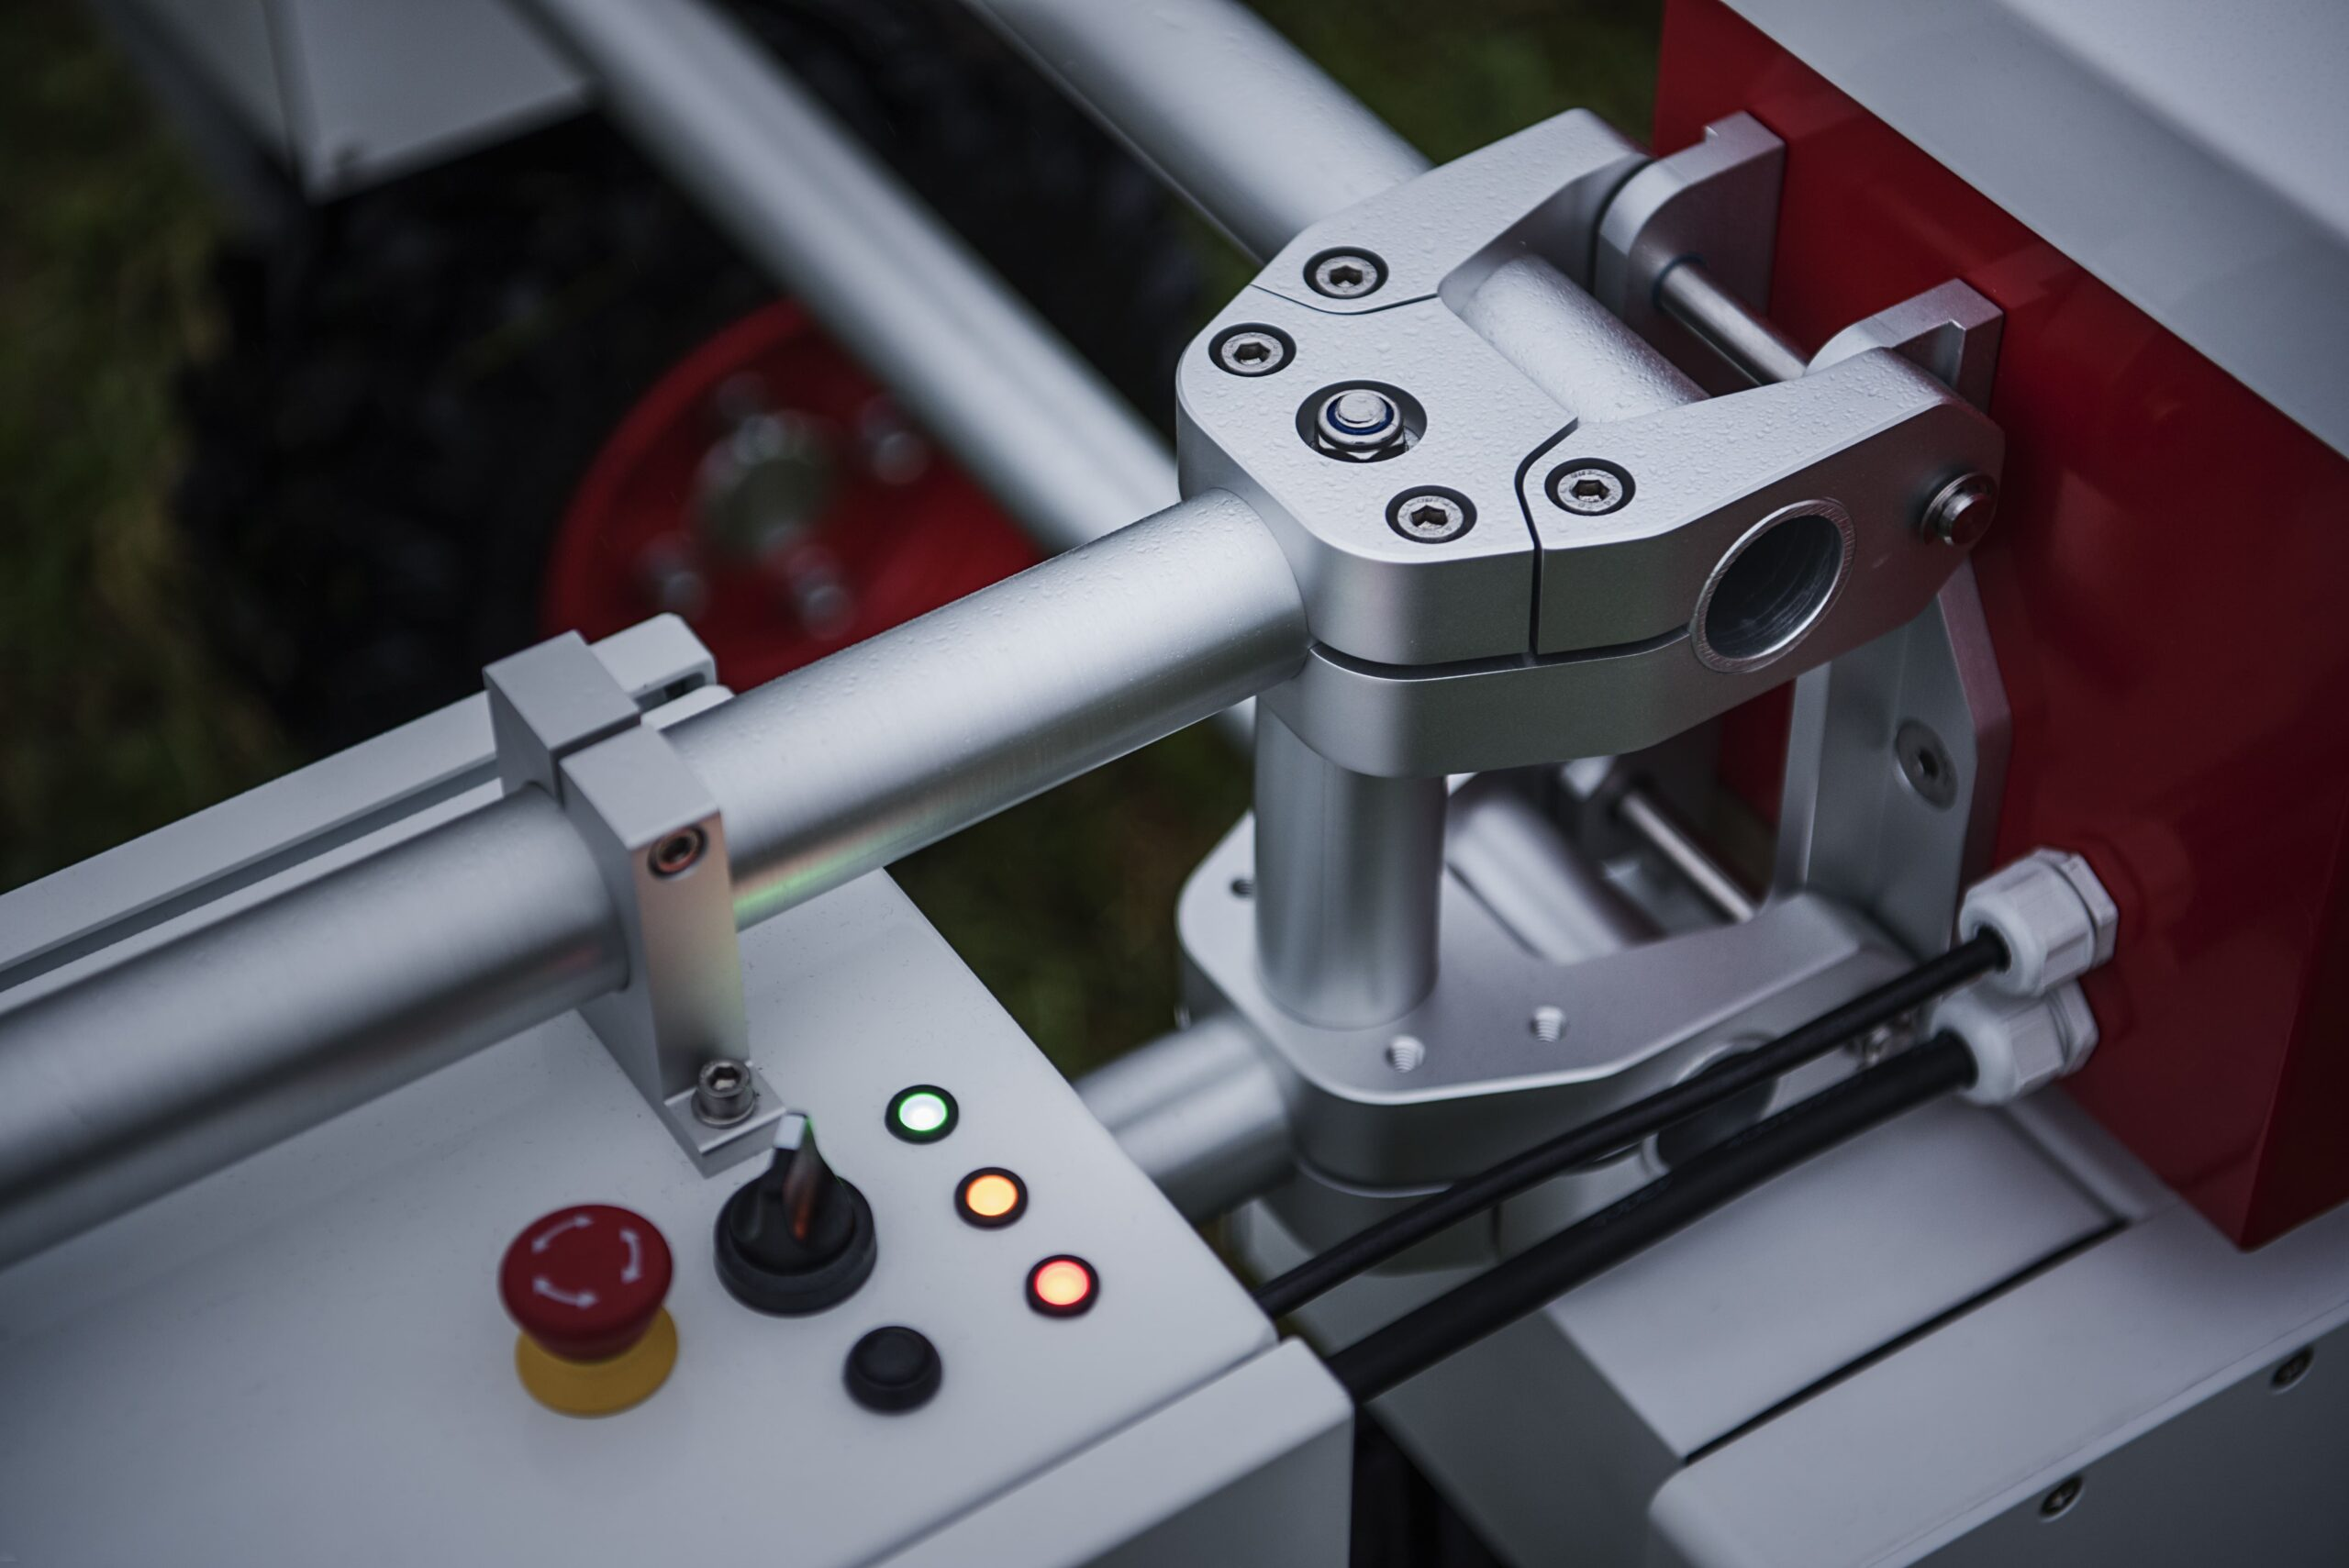 Thorvald agricultural robot close up